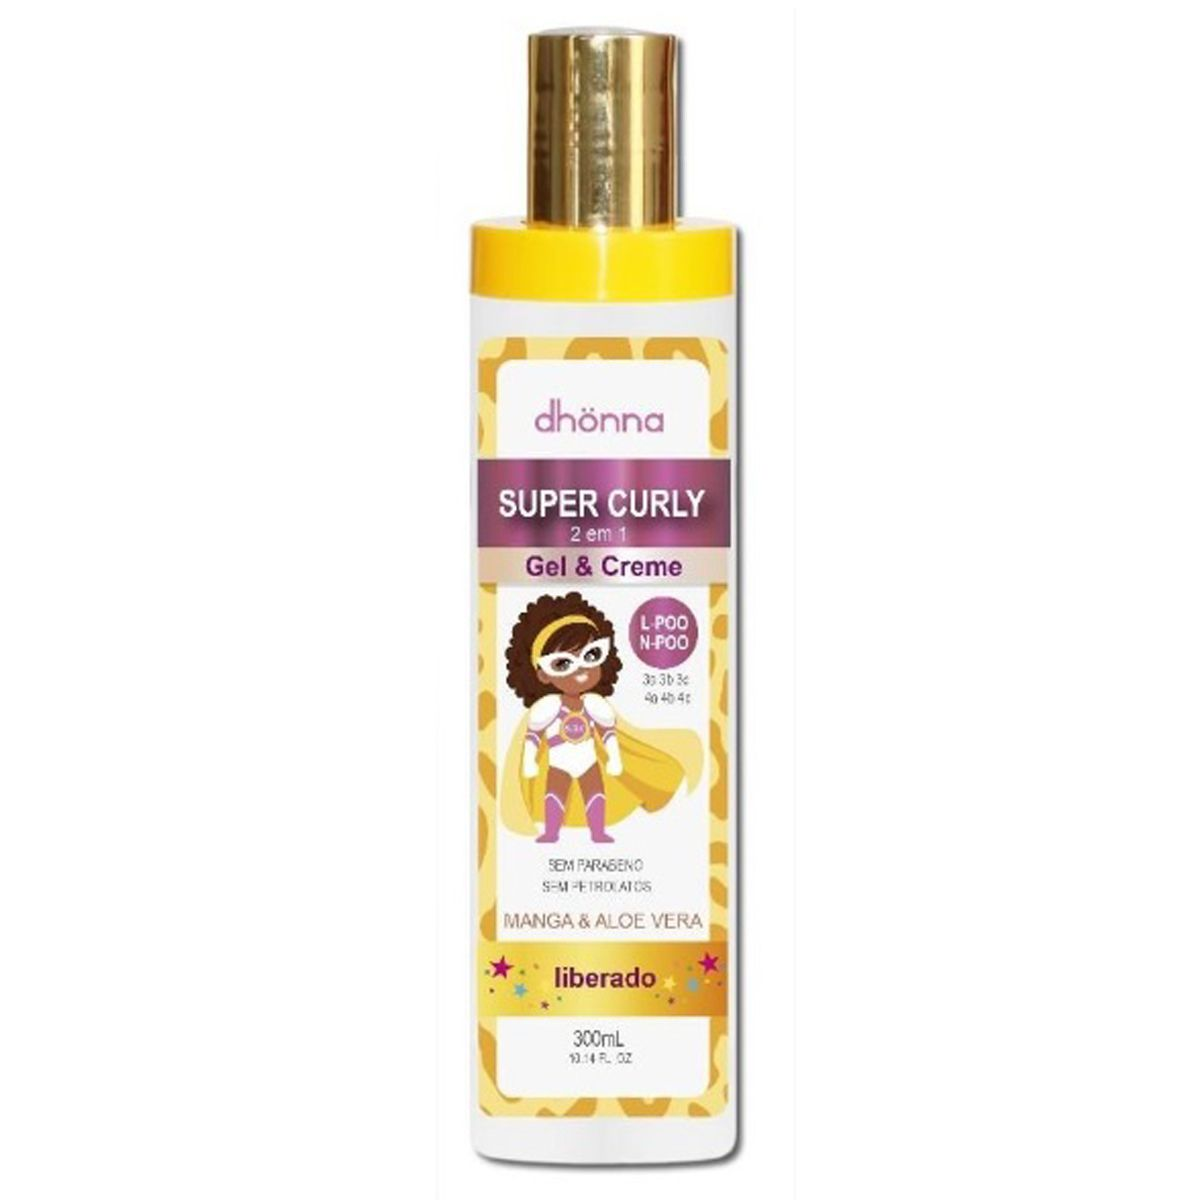 Dhonna - Super Curly - Gel & Creme - 300ml